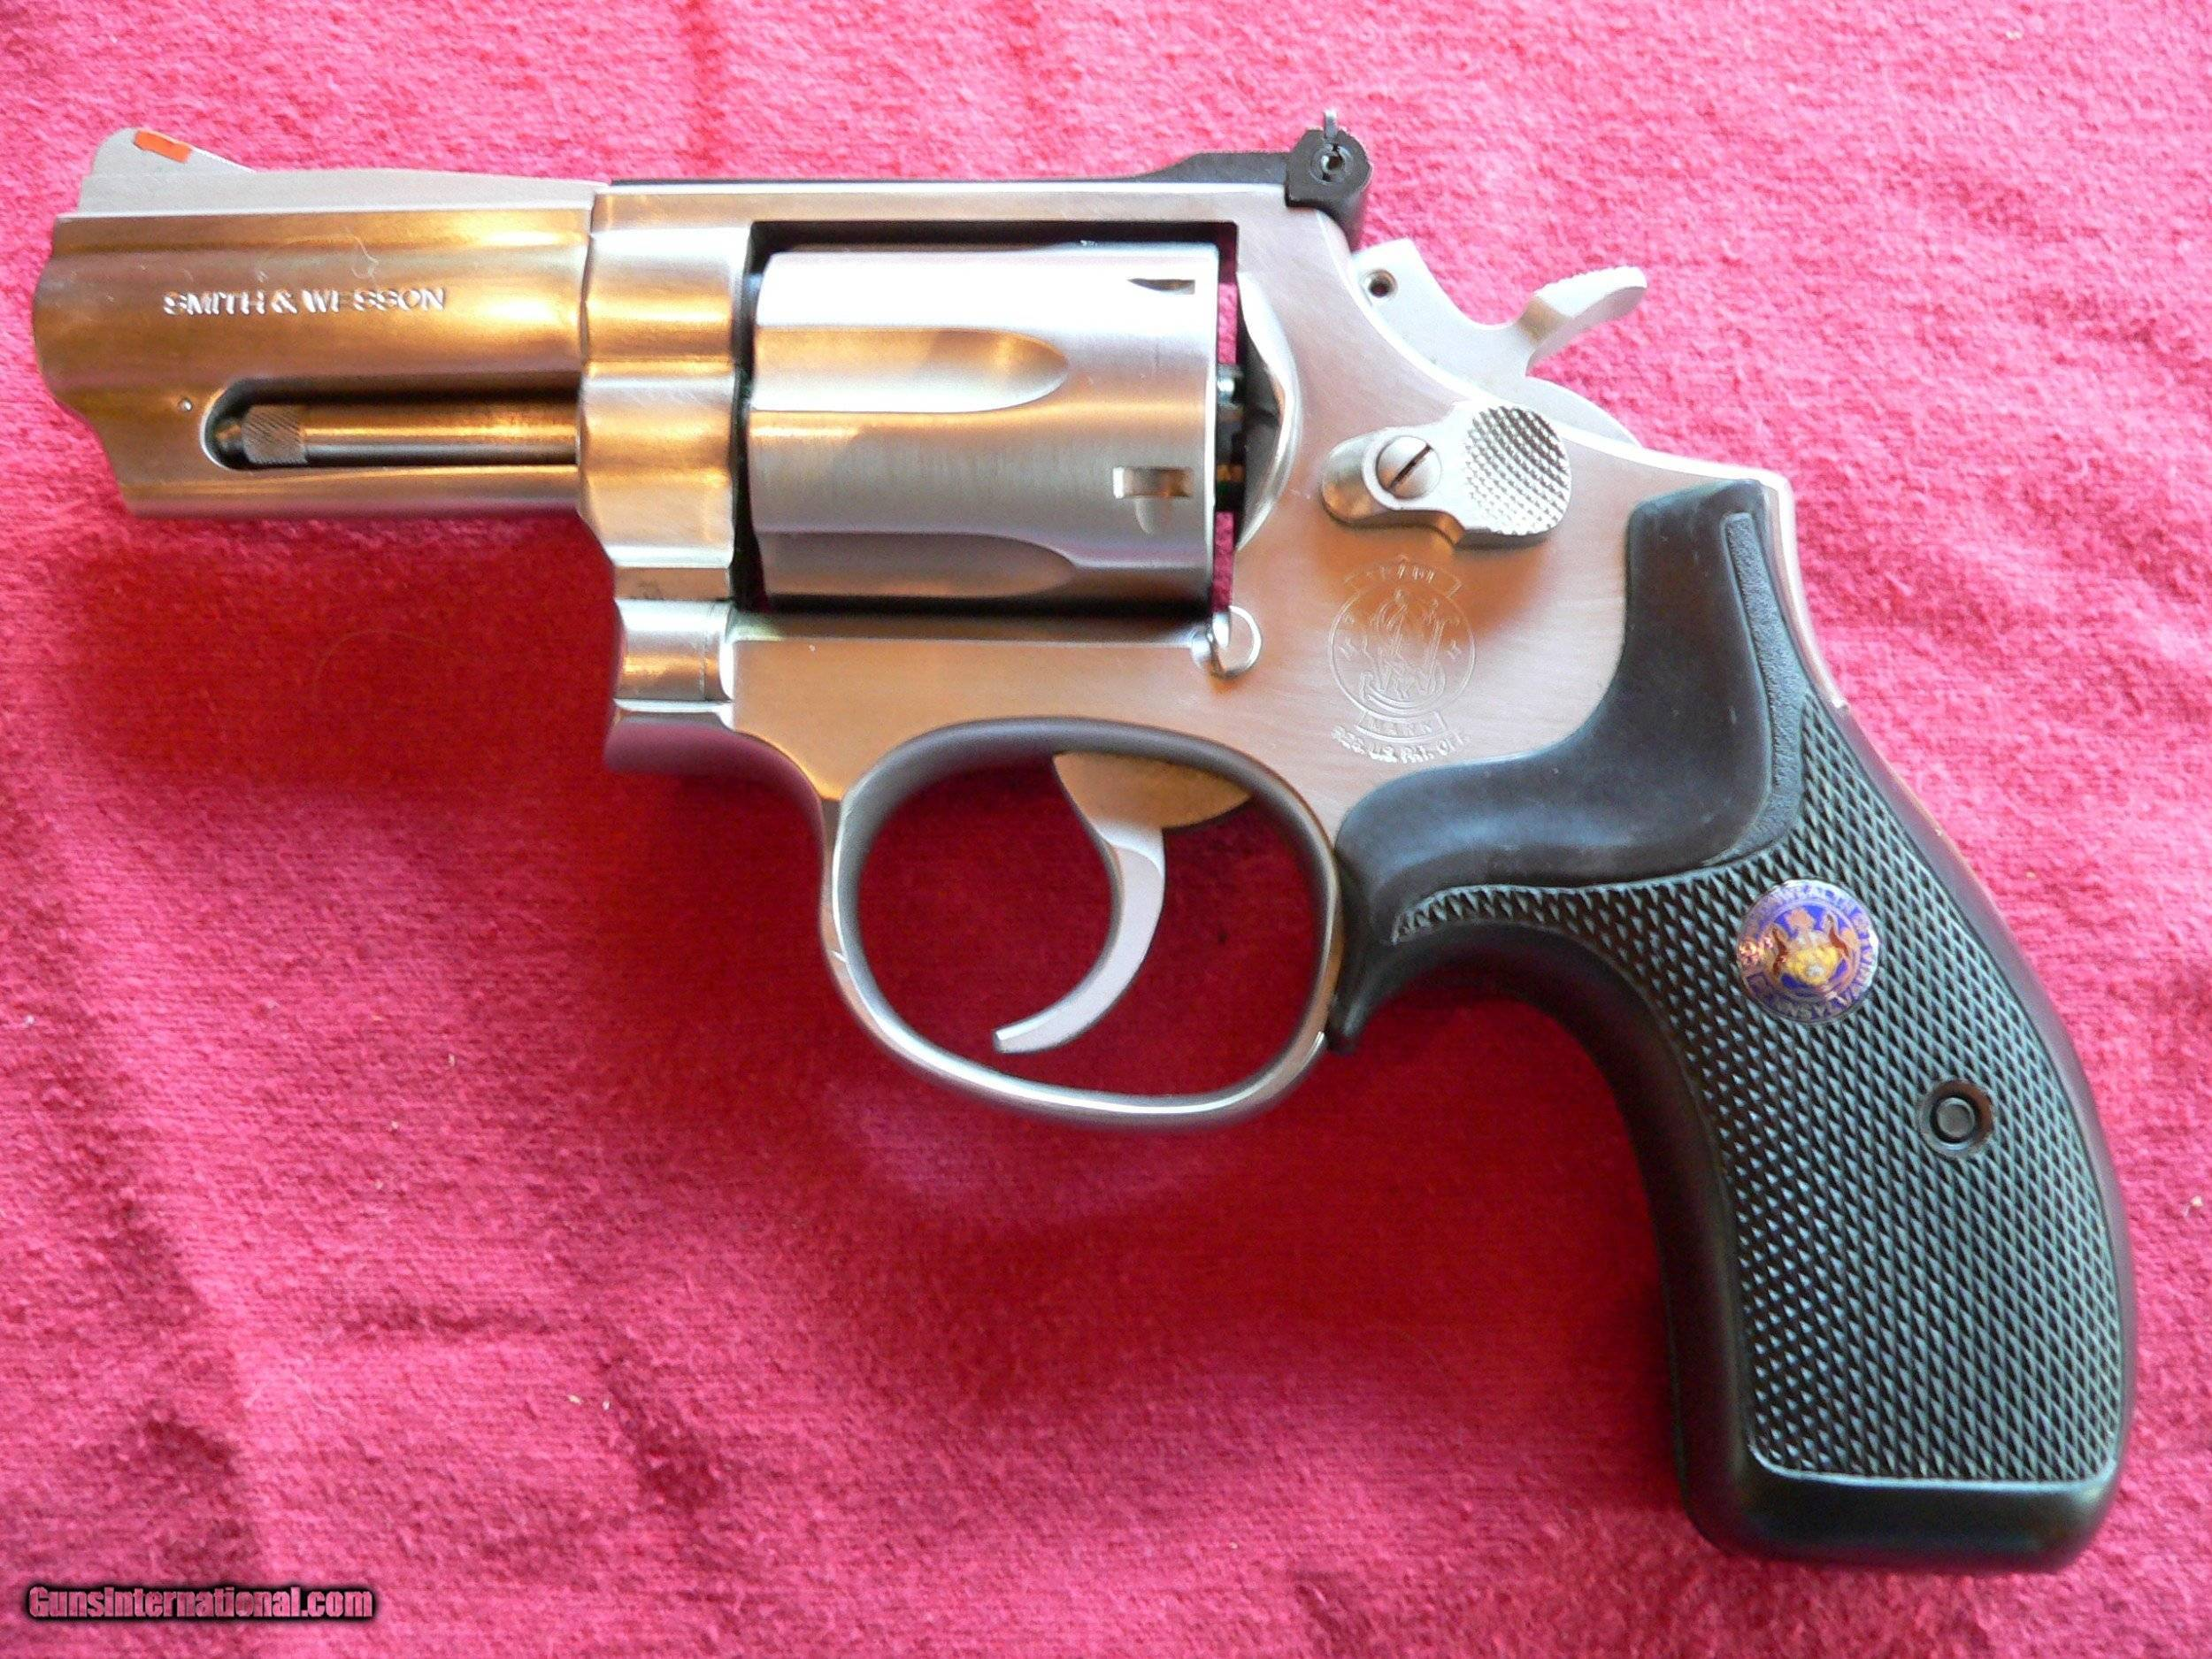 Smith & wesson model 27 - smith & wesson model 27 - qwe.wiki